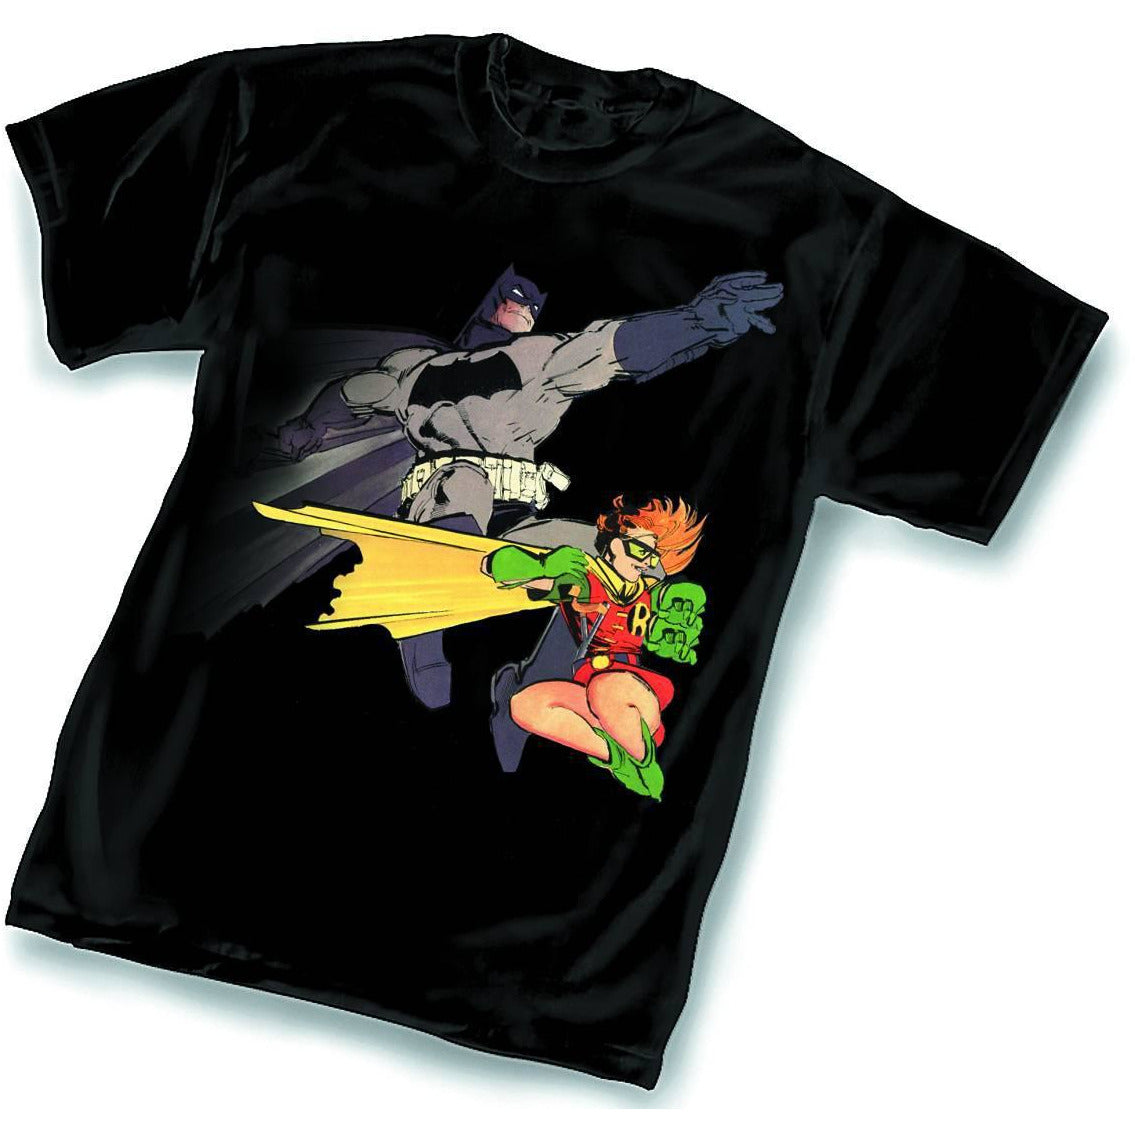 DARK KNIGHT AND ROBIN BY FRANK MILLER SHIRT L